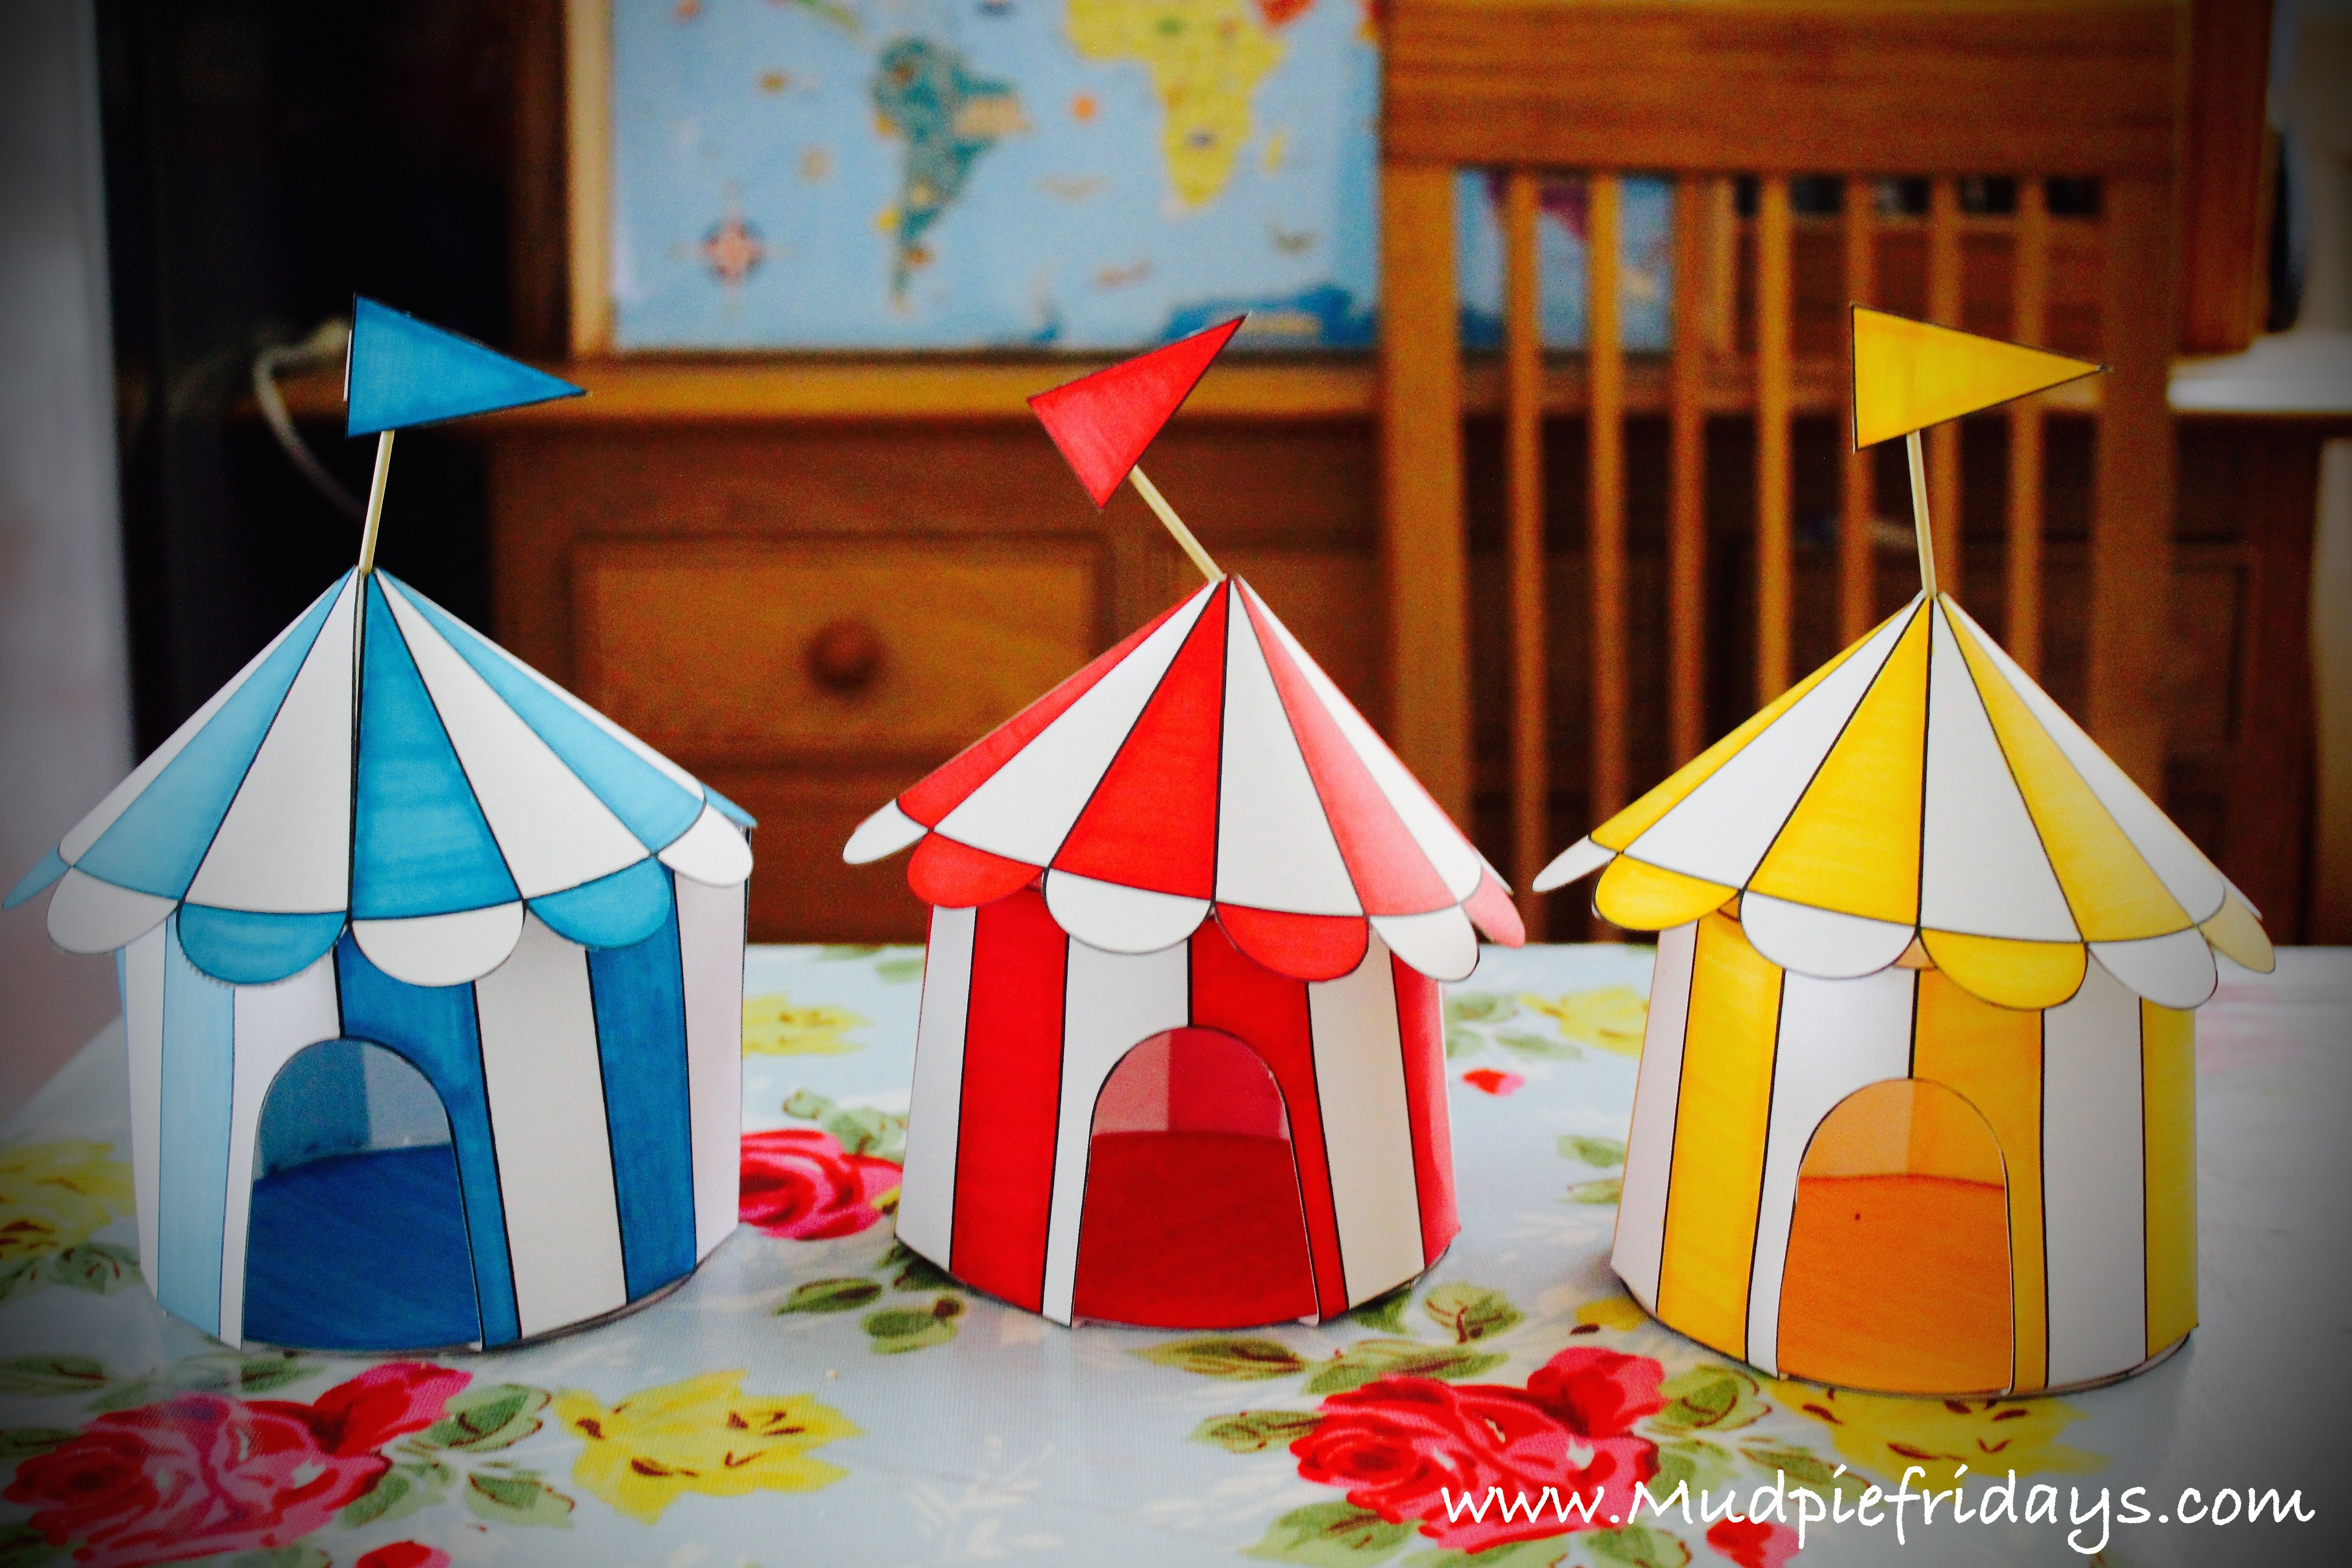 Circus Tents from First Palette & Circus Tents from First Palette | CIRC | Pinterest | Circus crafts